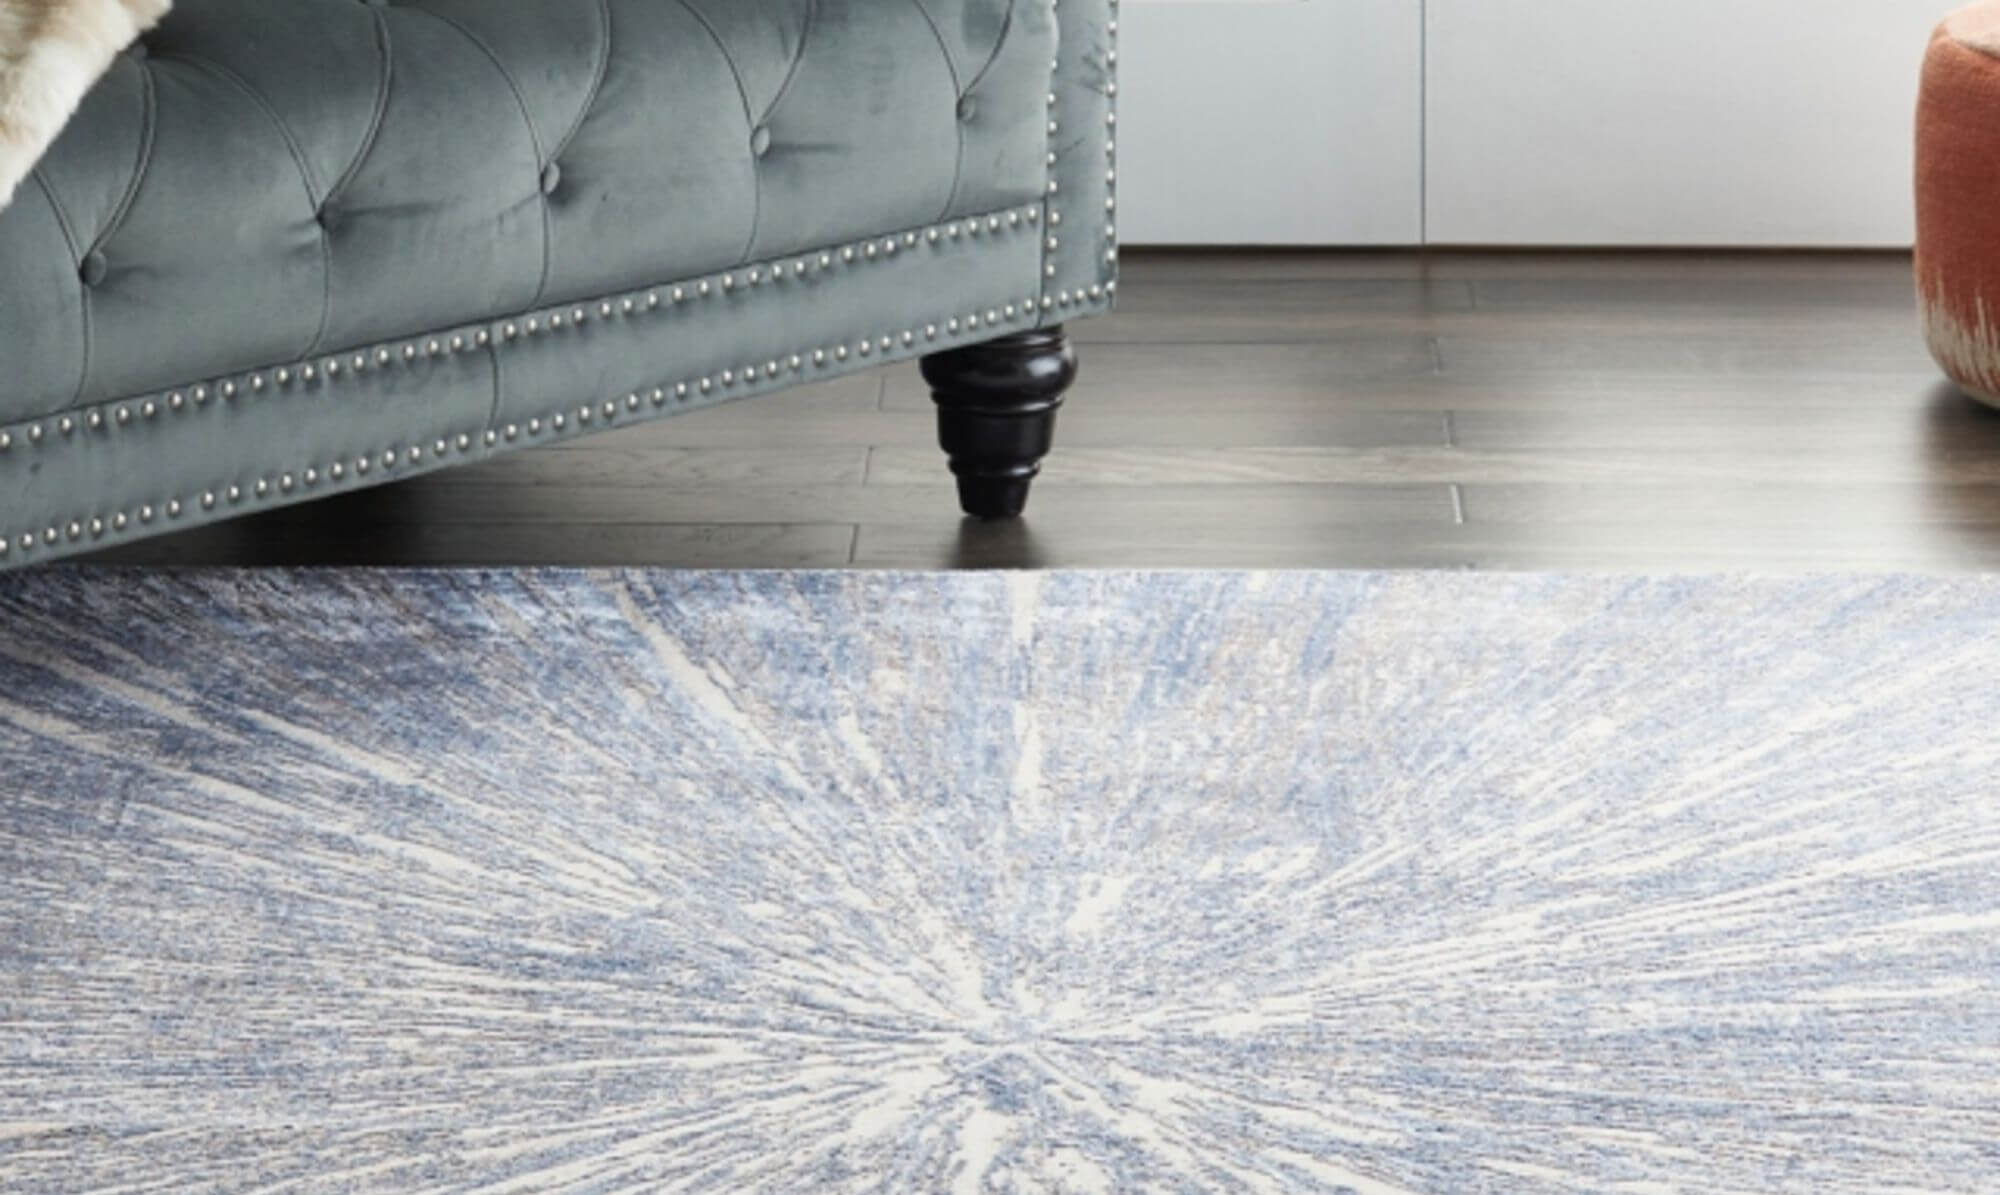 How To Stops Rug Moving On Carpet, Stop Rug From Slipping On Laminate Flooring